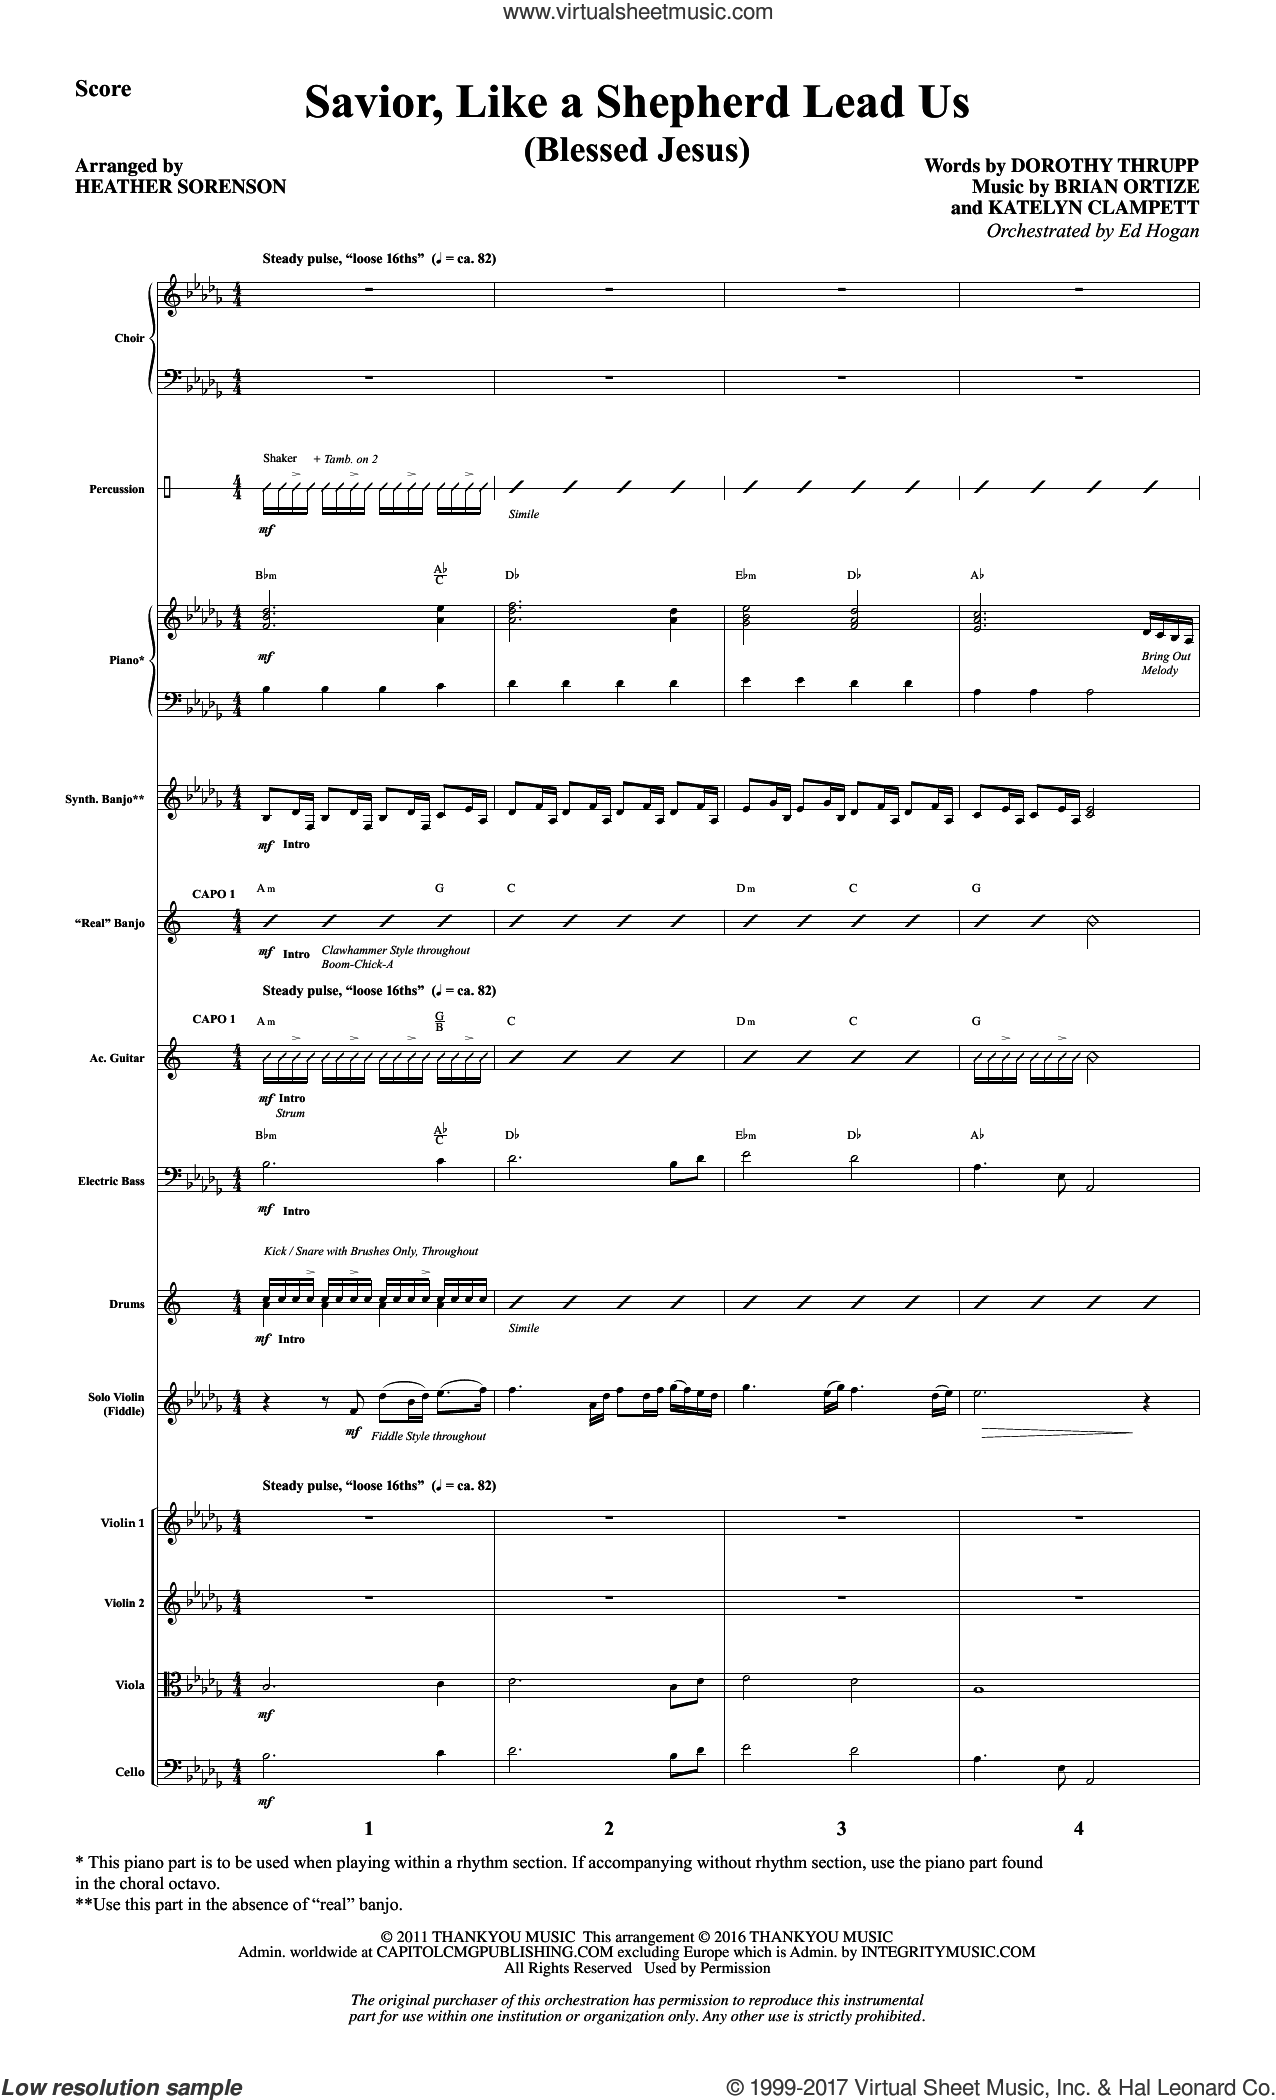 Savior, Like a Shepherd Lead Us (Blessed Jesus) (COMPLETE) sheet music for orchestra/band by Heather Sorenson, Brian Ortize, Dorothy Thrupp and Katelyn Clampett, intermediate. Score Image Preview.